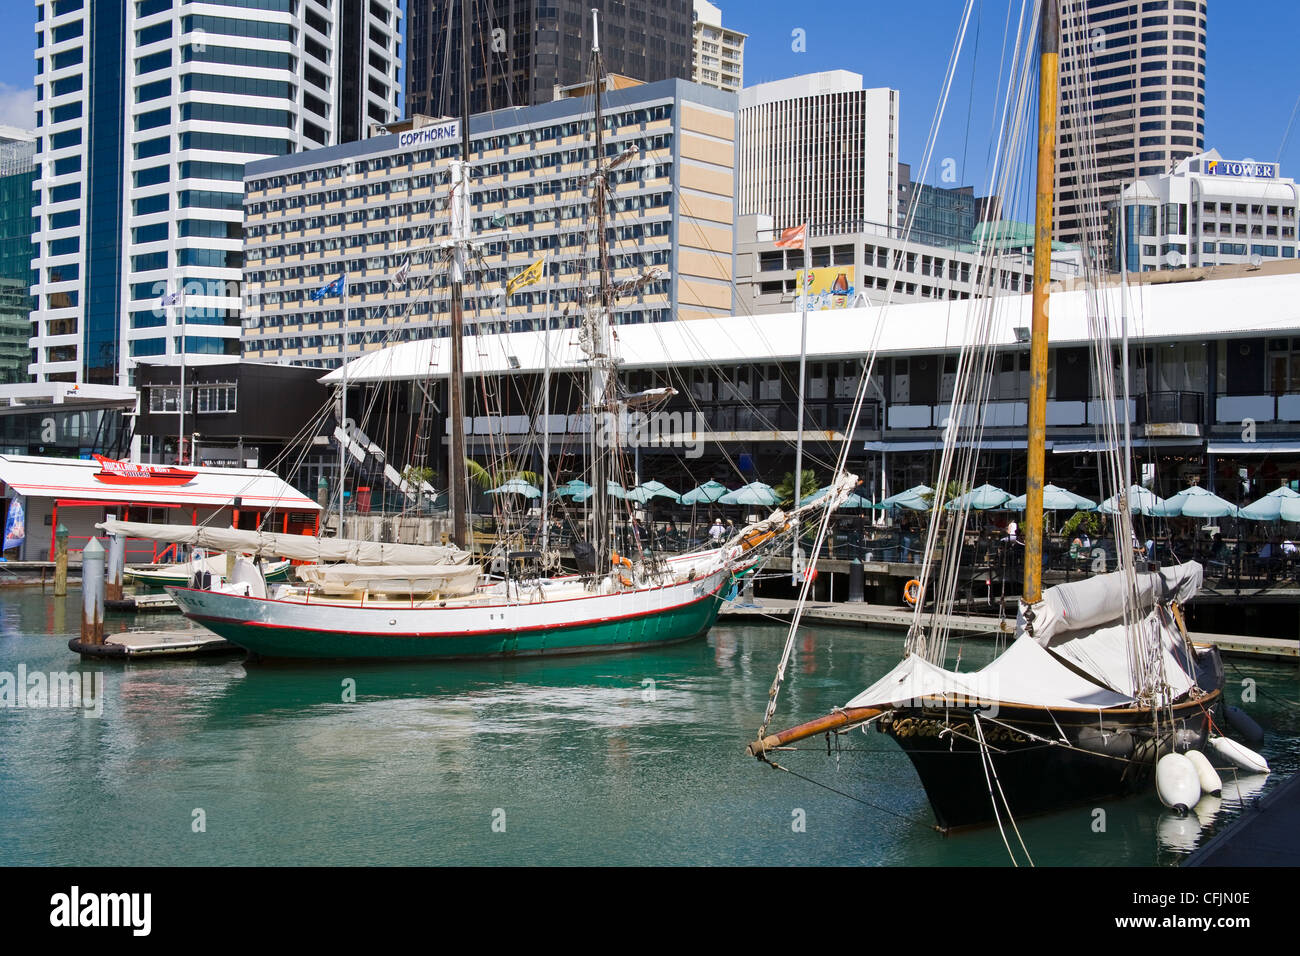 Princes Wharf, Central Business District, Auckland, North Island, New Zealand, Pacific - Stock Image